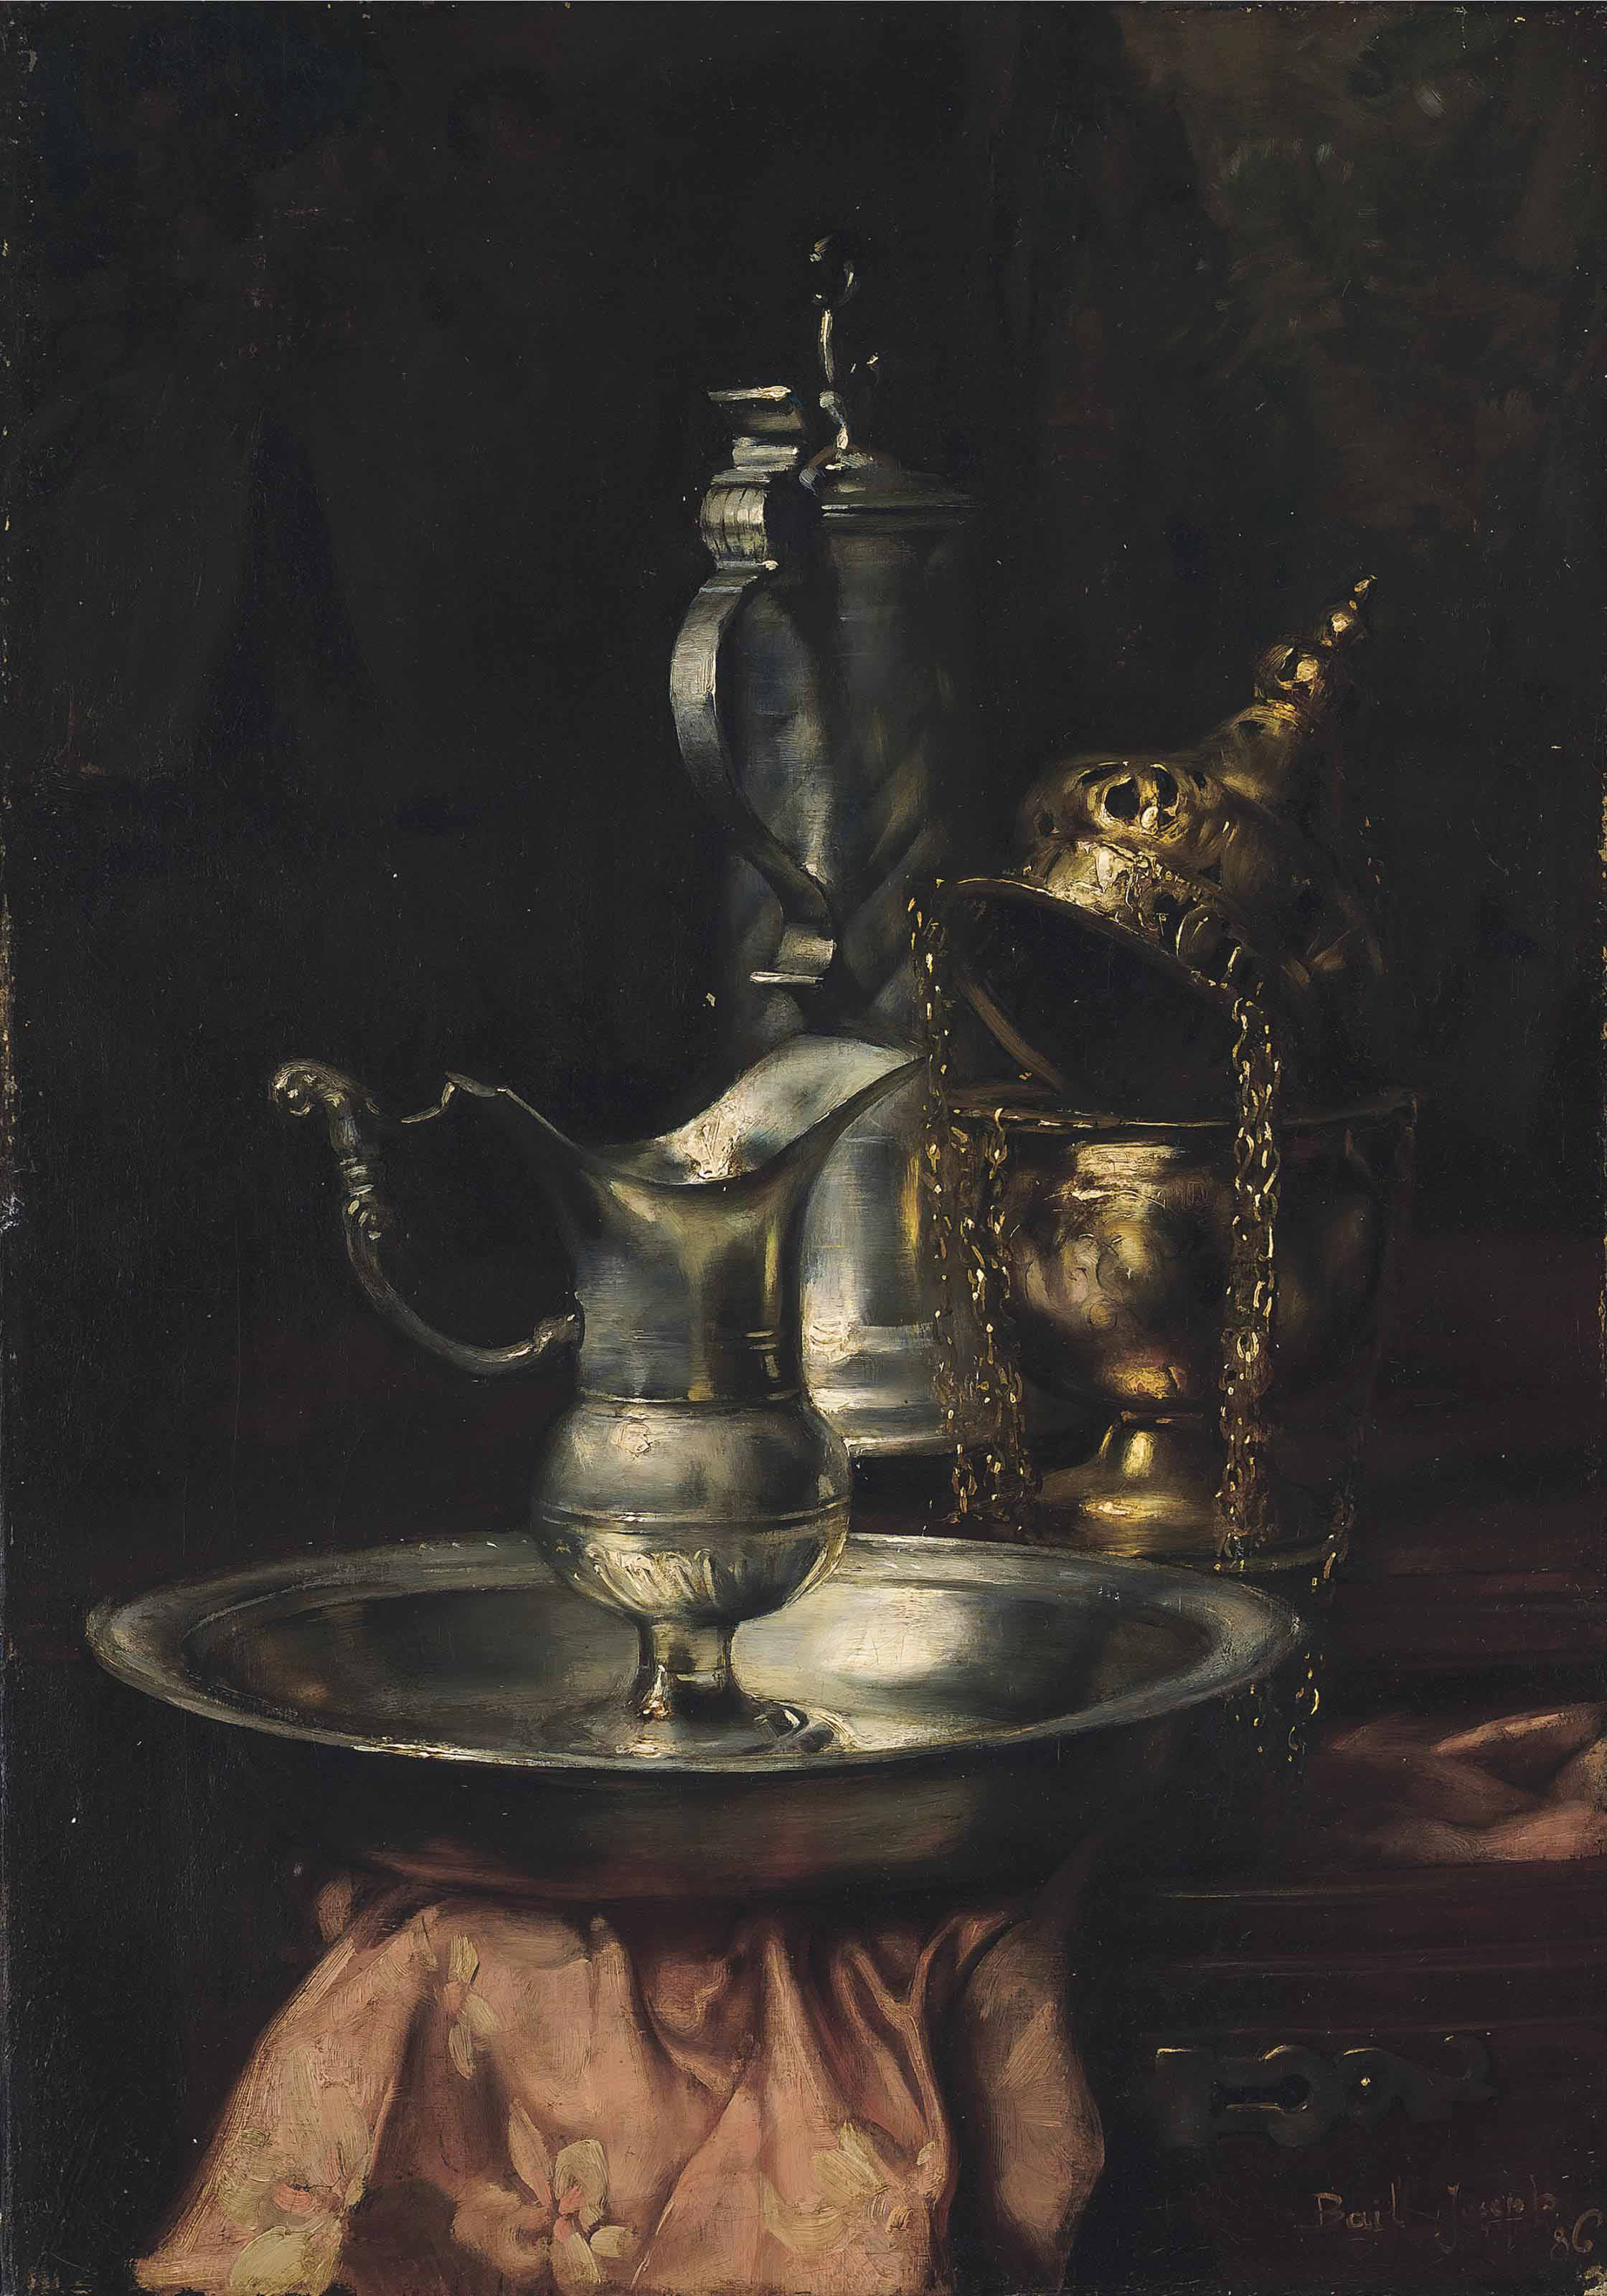 A silver jug and bowl on a wooden ledge